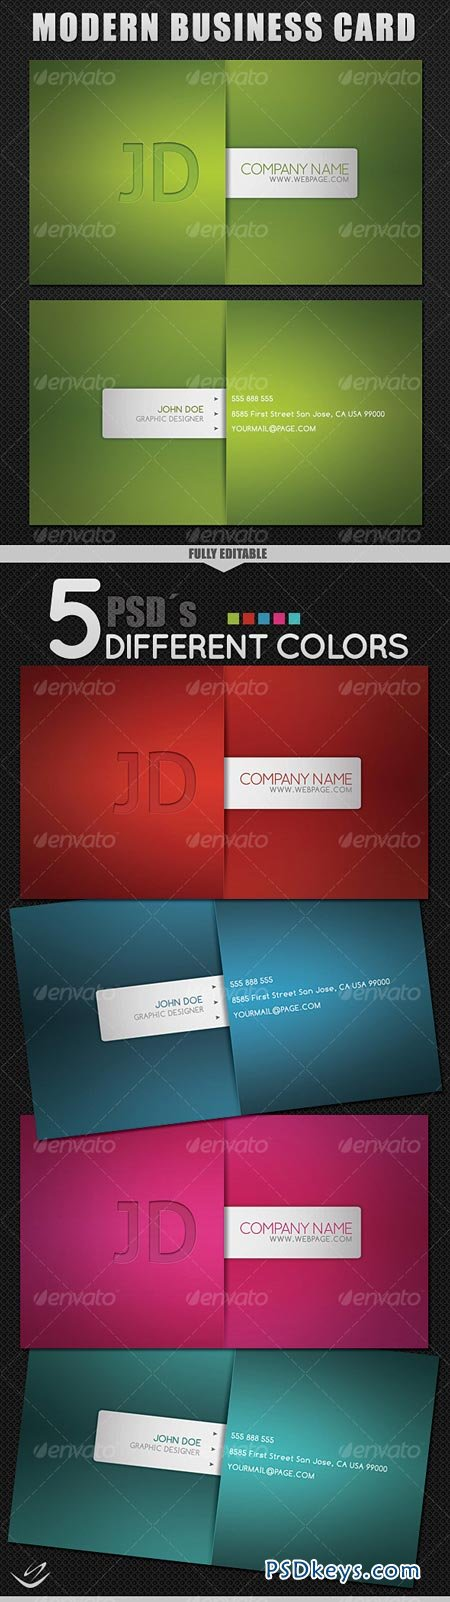 Modern Style Business Card - 5 Different Colors 69886